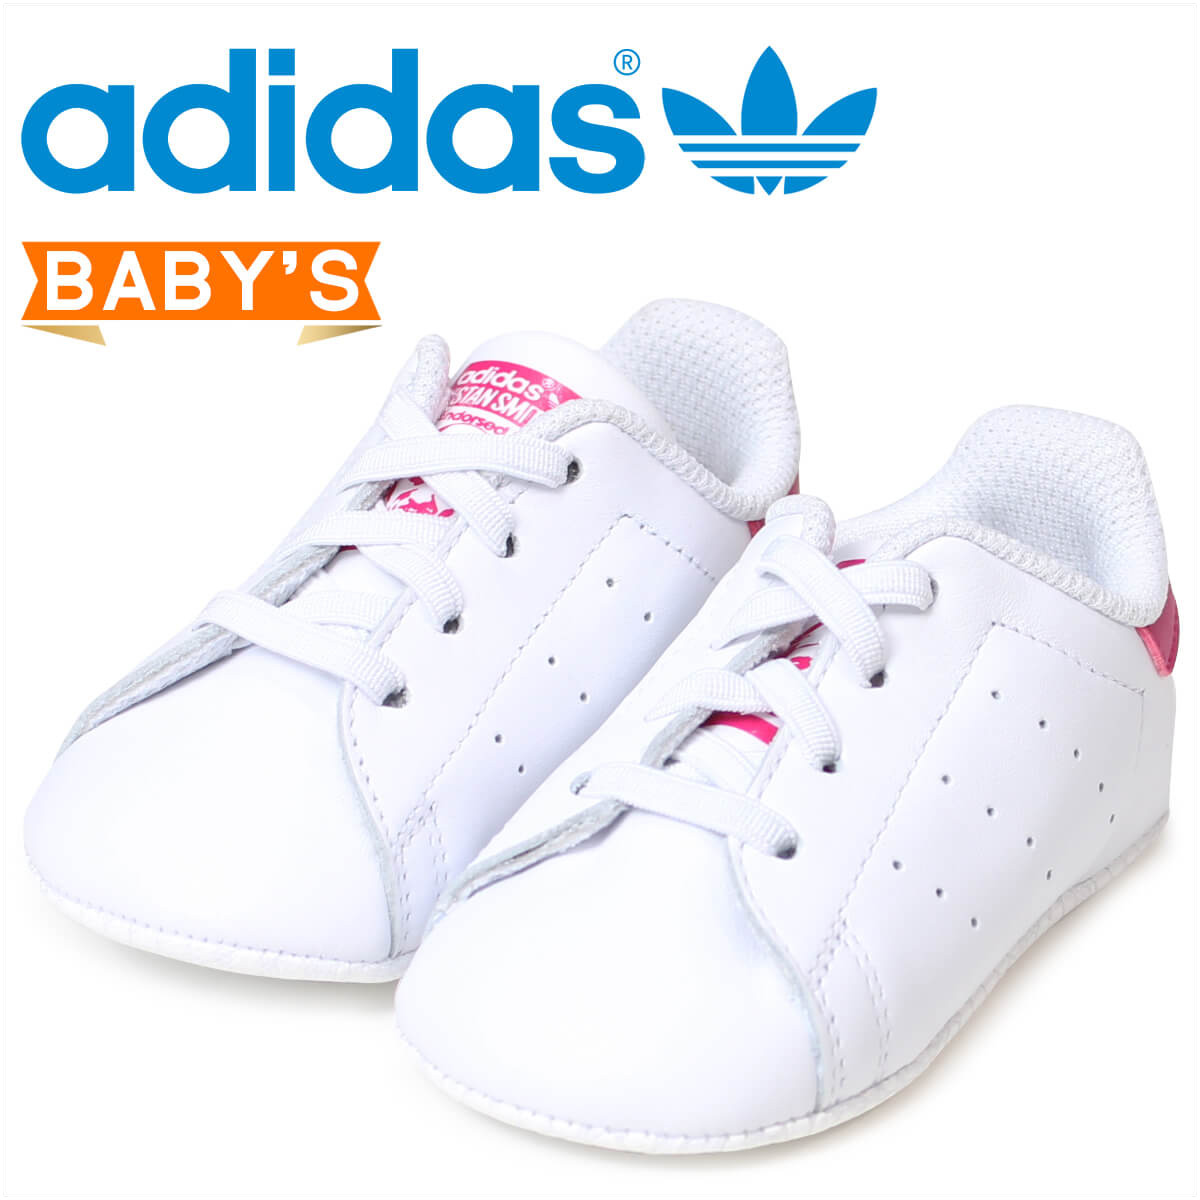 adidas Originals Stan Smith kids baby Adidas sneakers STAN SMITH CRIB S82618 shoes white white originals